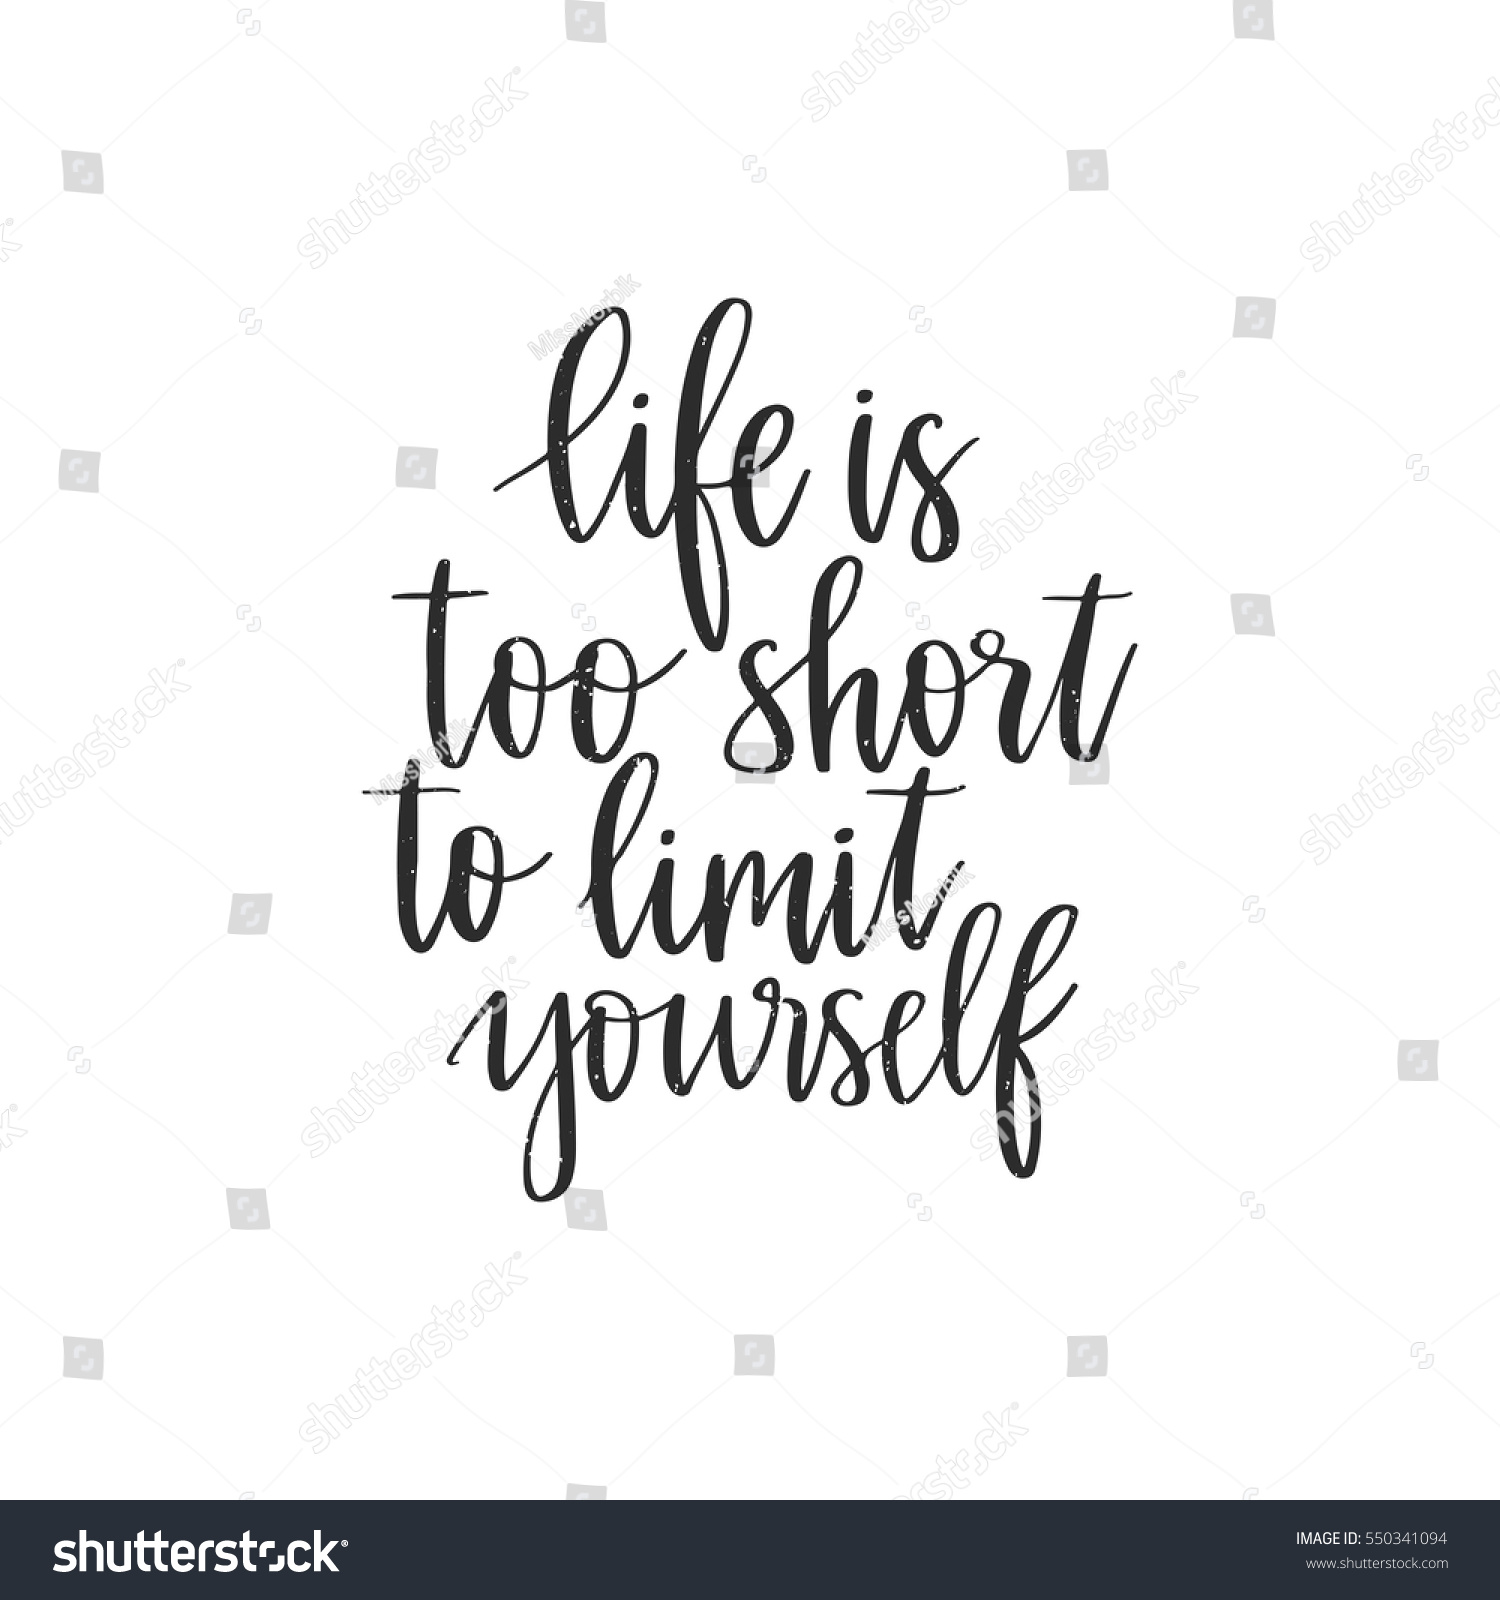 Motivational inspirational quote positive life poster picture print BE YOURSELF